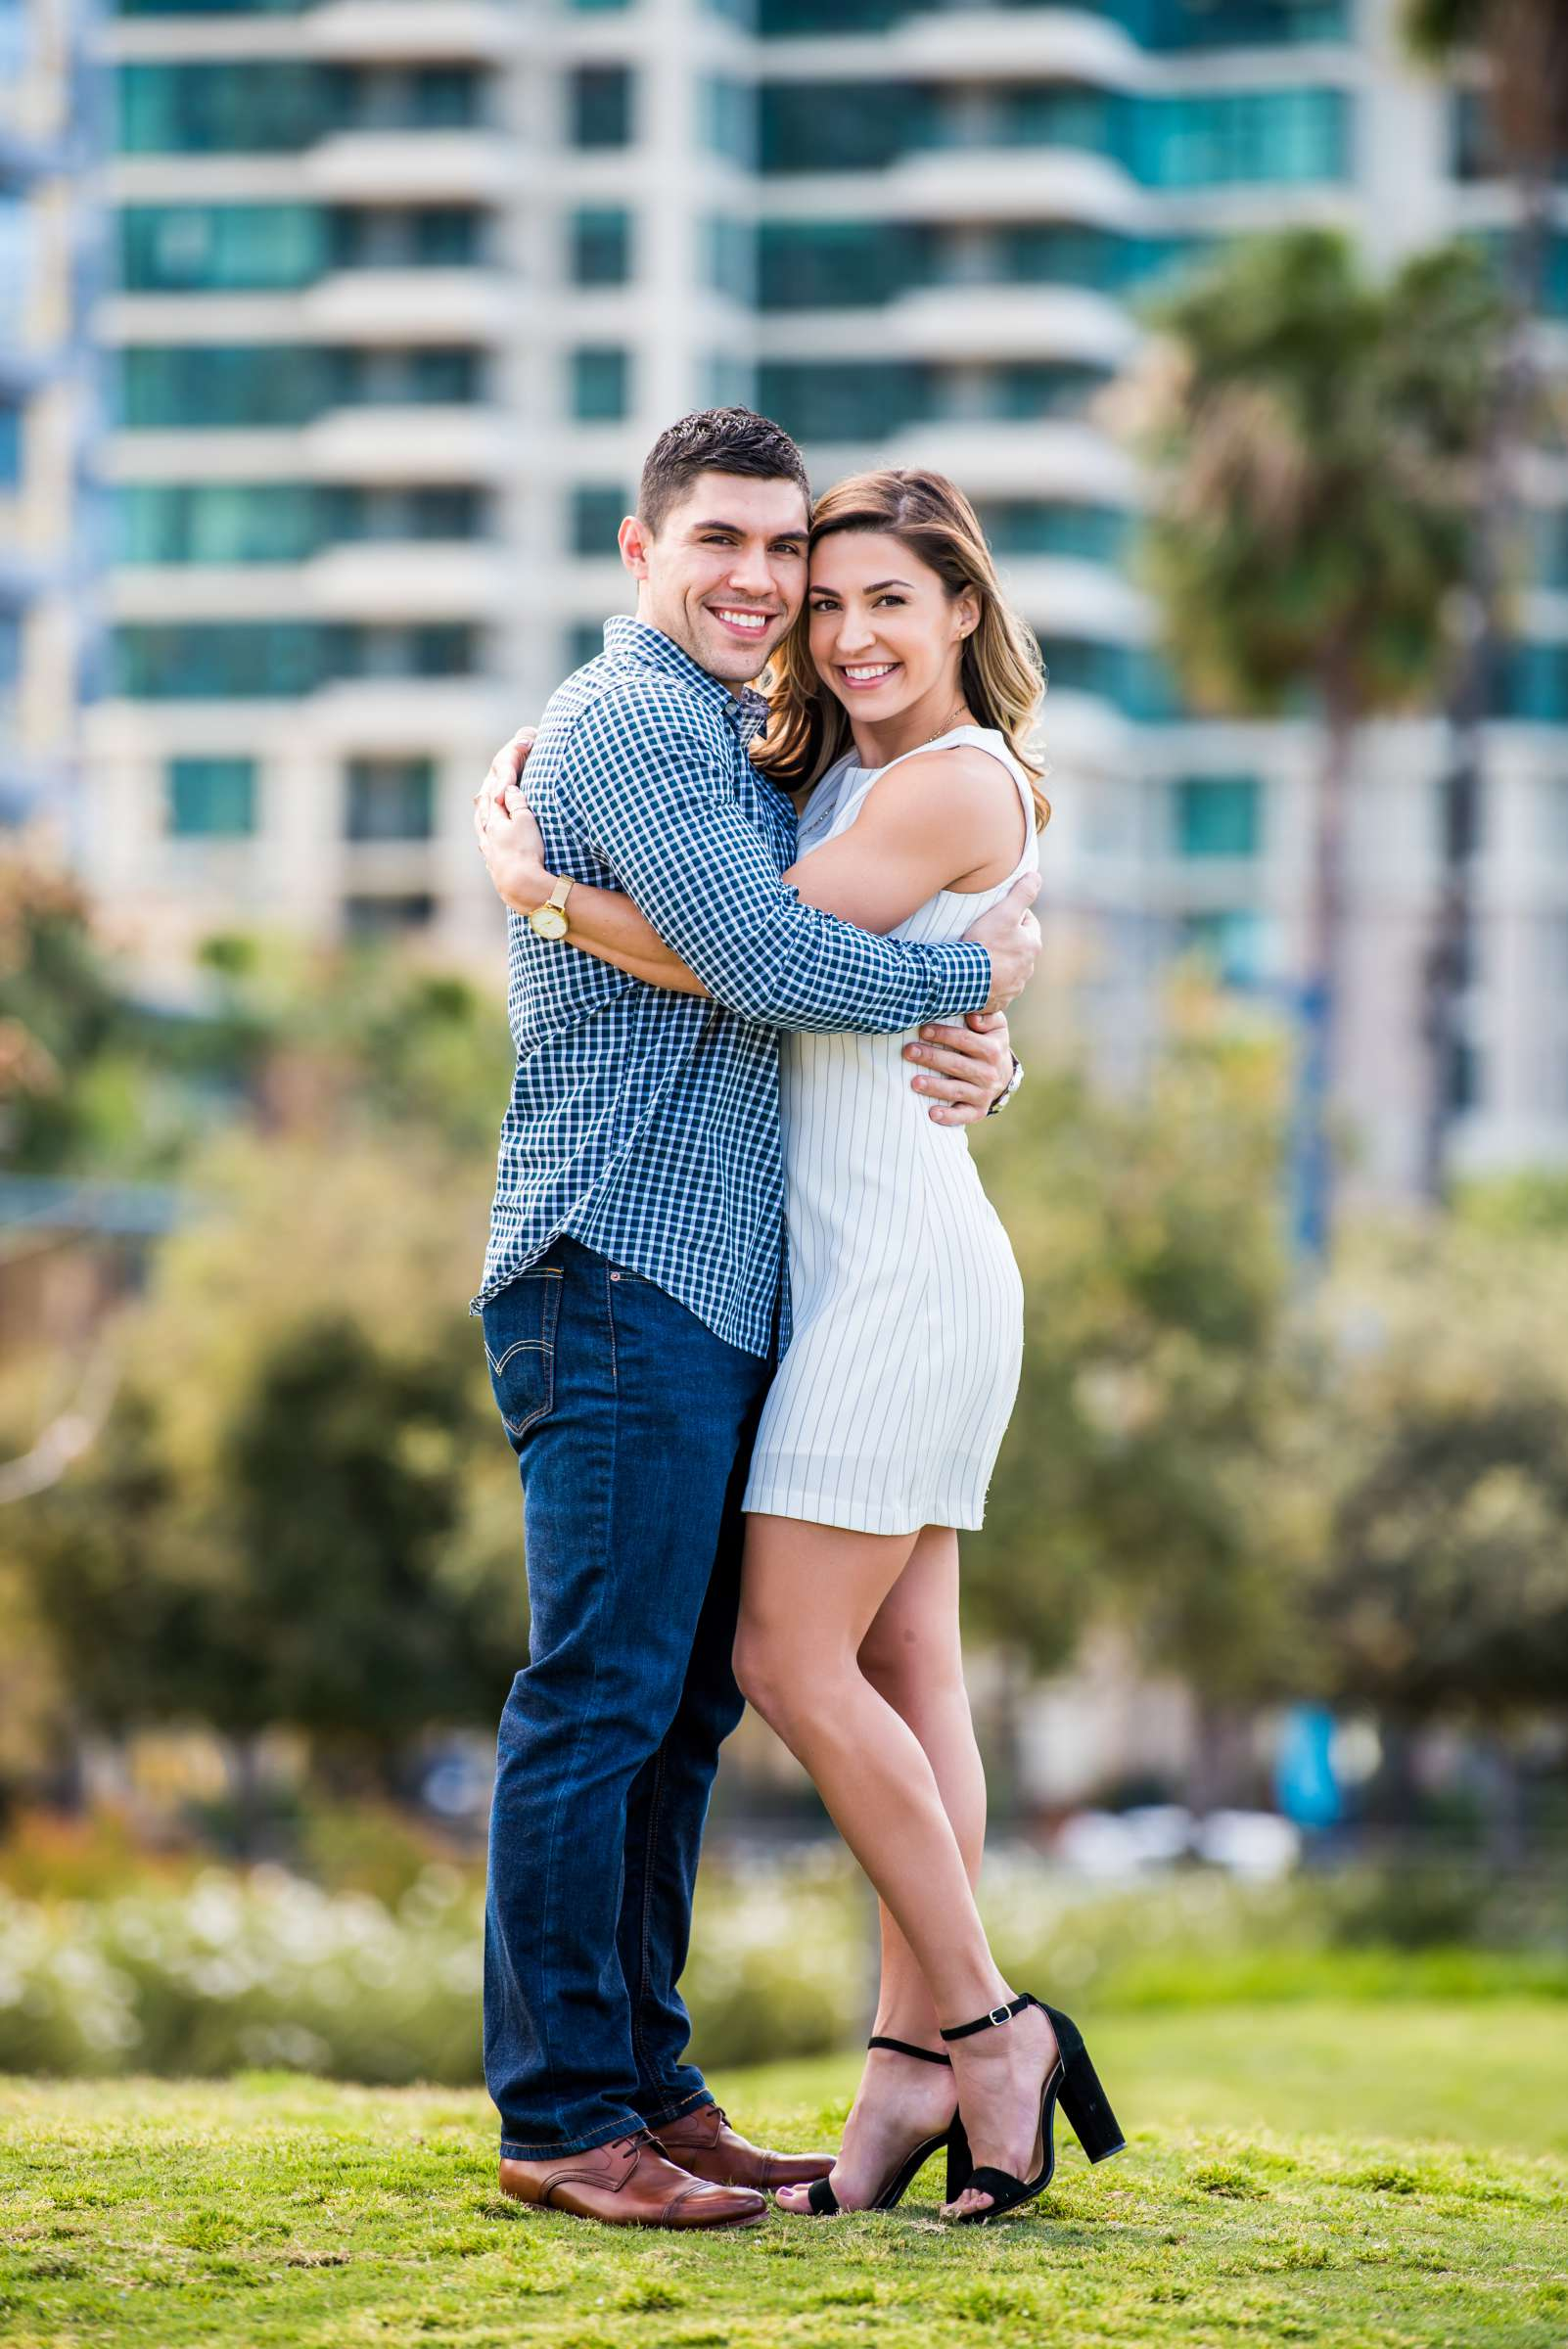 San Diego Courthouse Engagement, Amanda and Stephano Engagement Photo #19 by True Photography